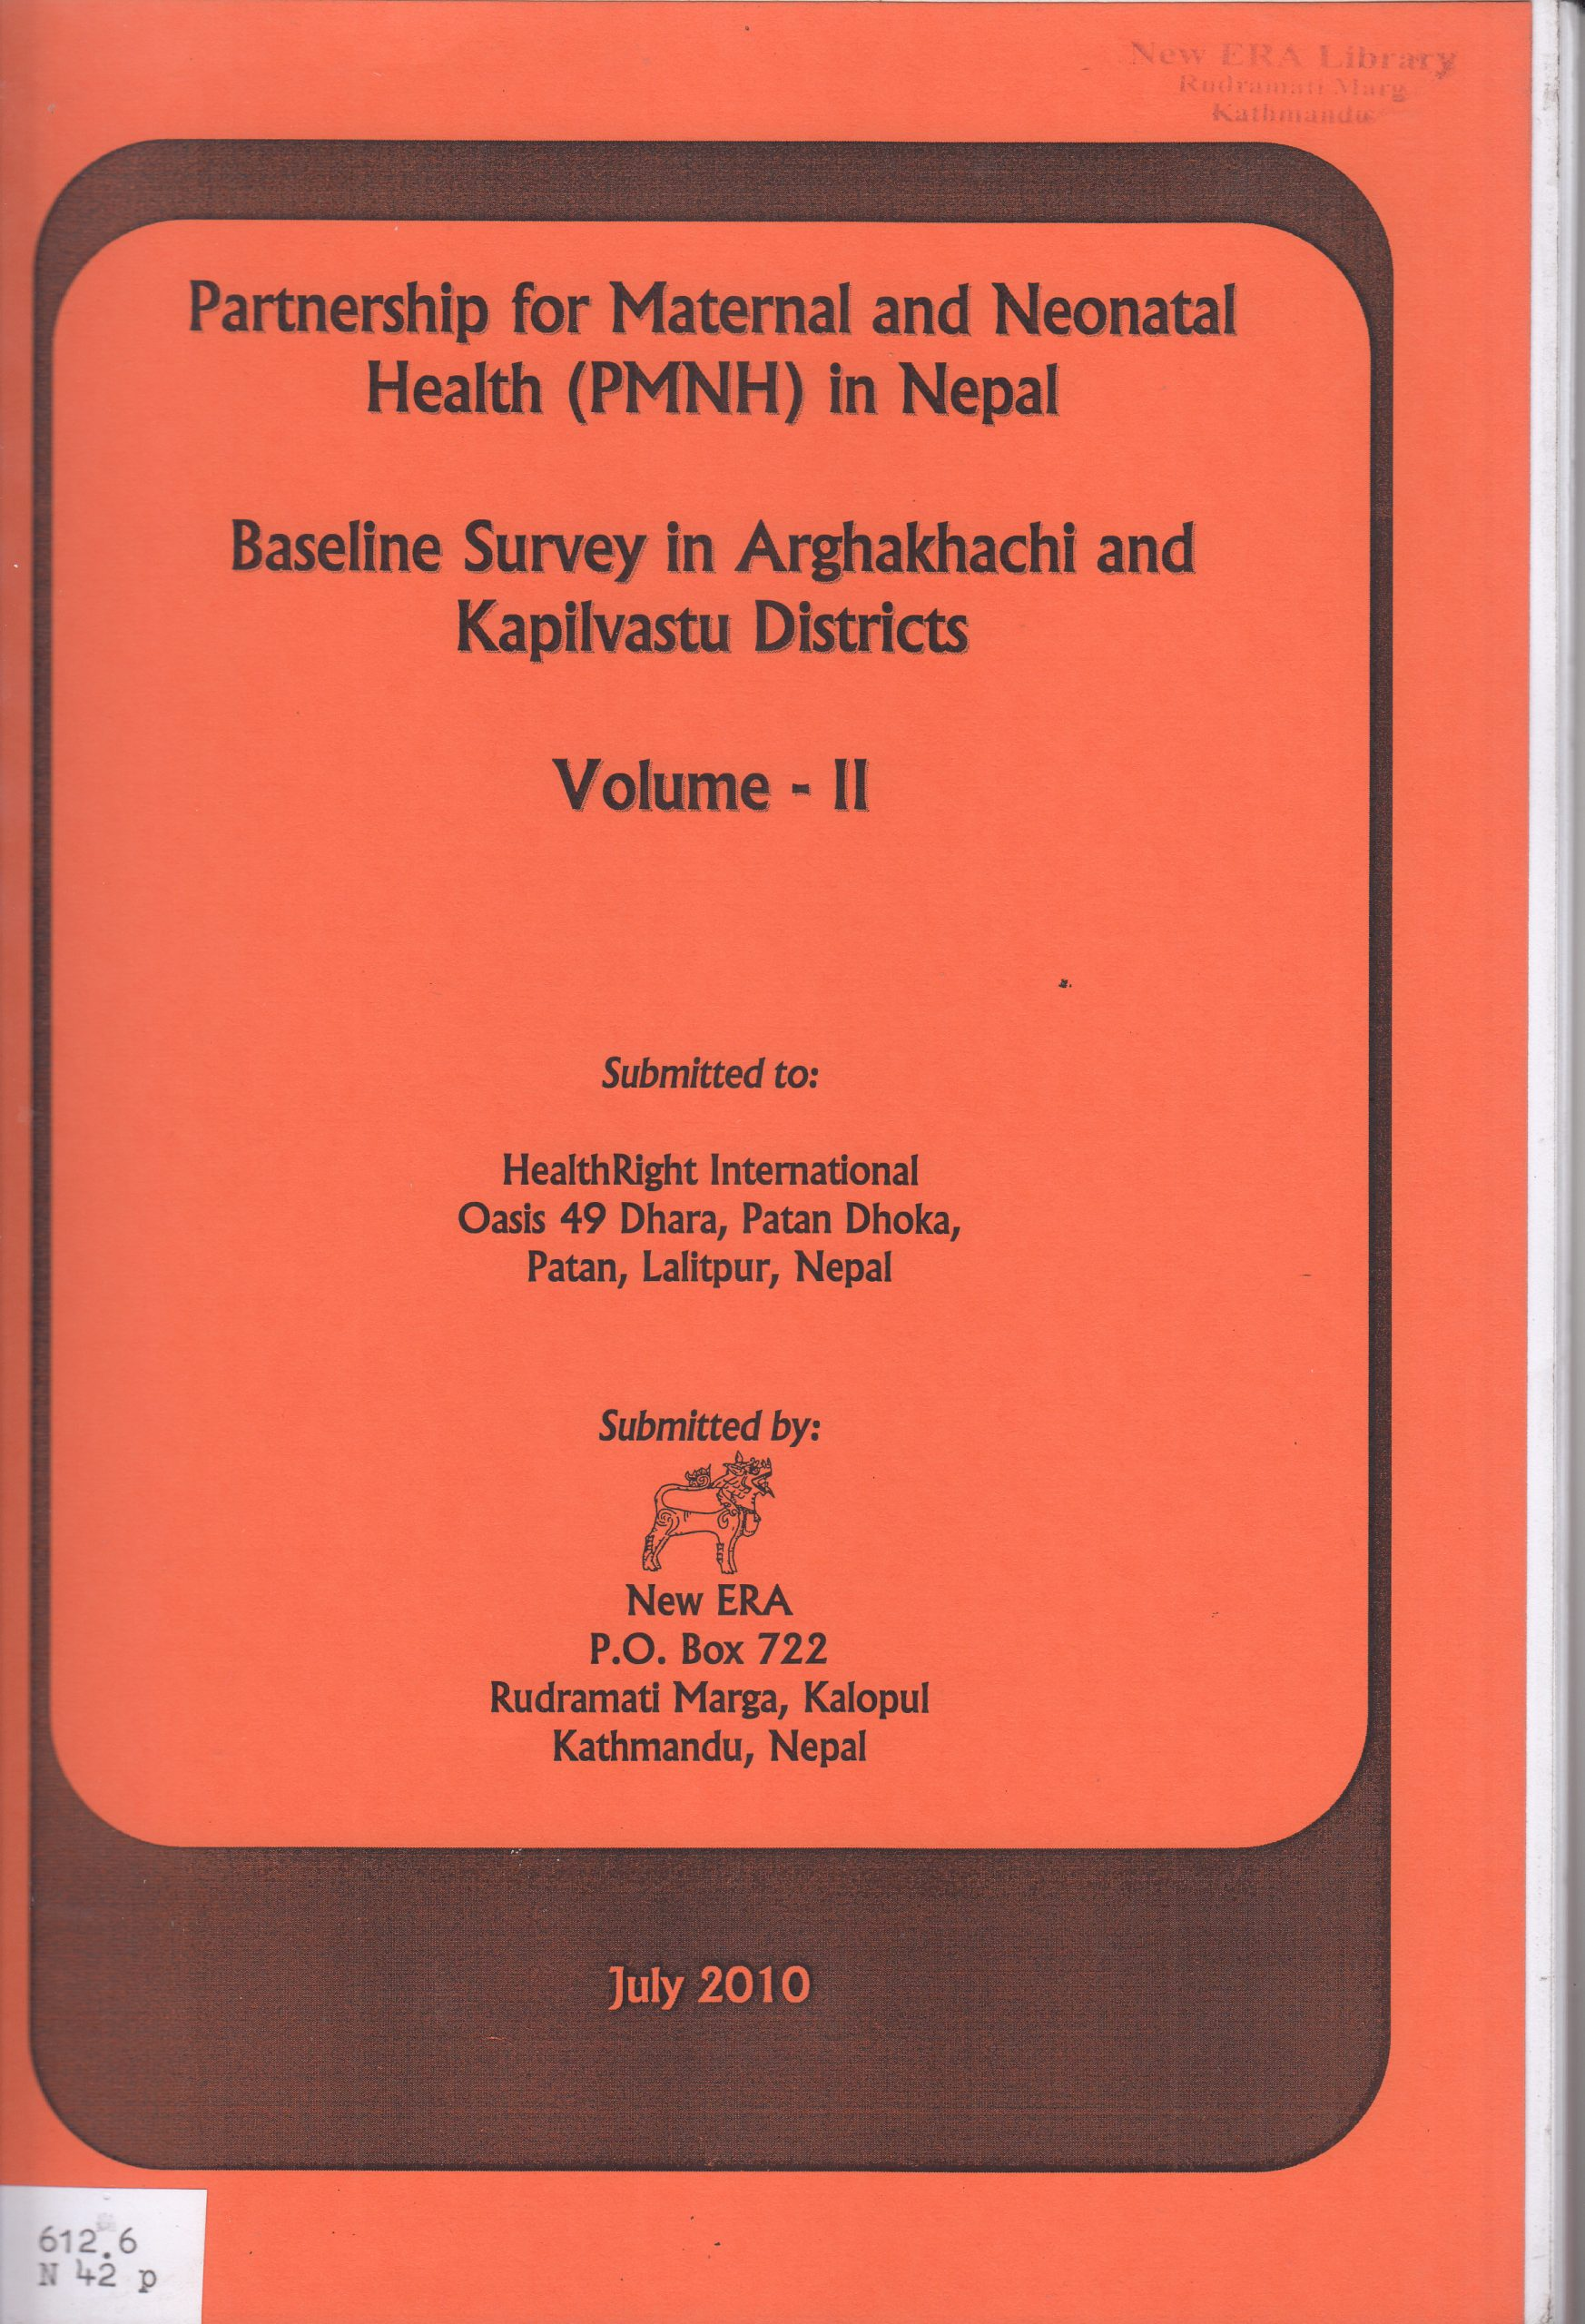 Partnership for Maternal and Neonatal Health in Nepal: Baseline Survey in Arghakhanchi and Kapilvastu Districts